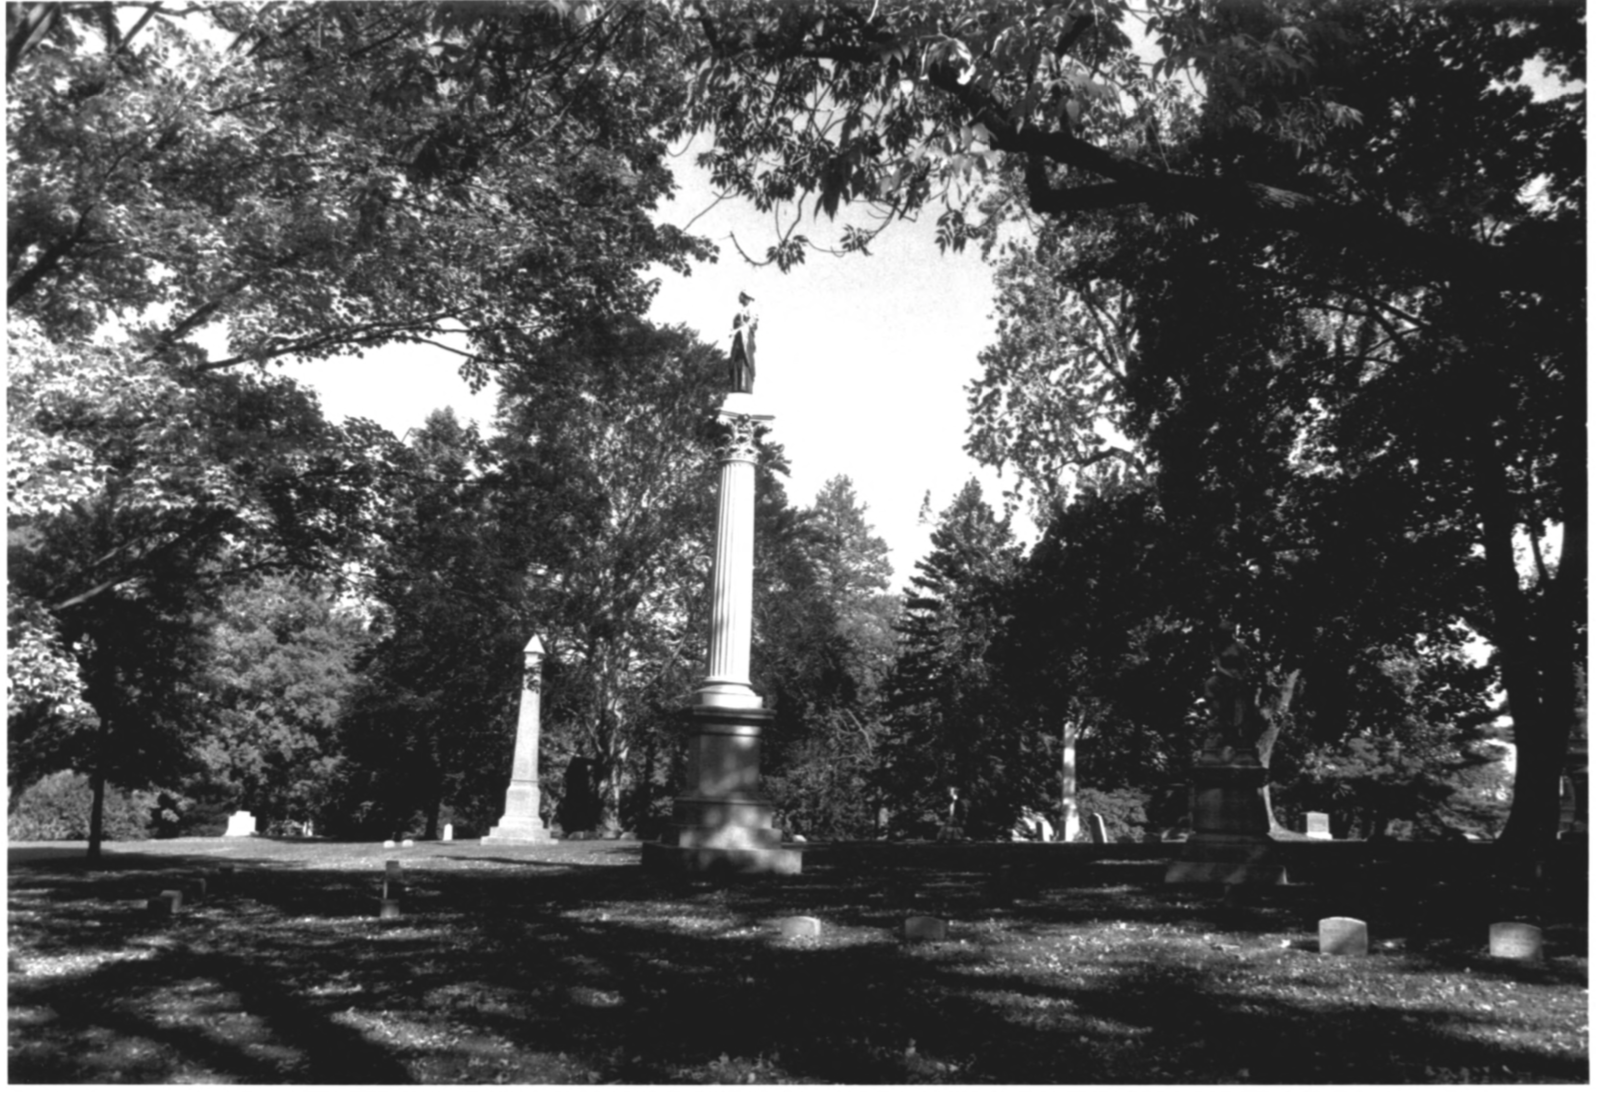 1997 NPS Photo Record of Cedar Hill Cemetary #17